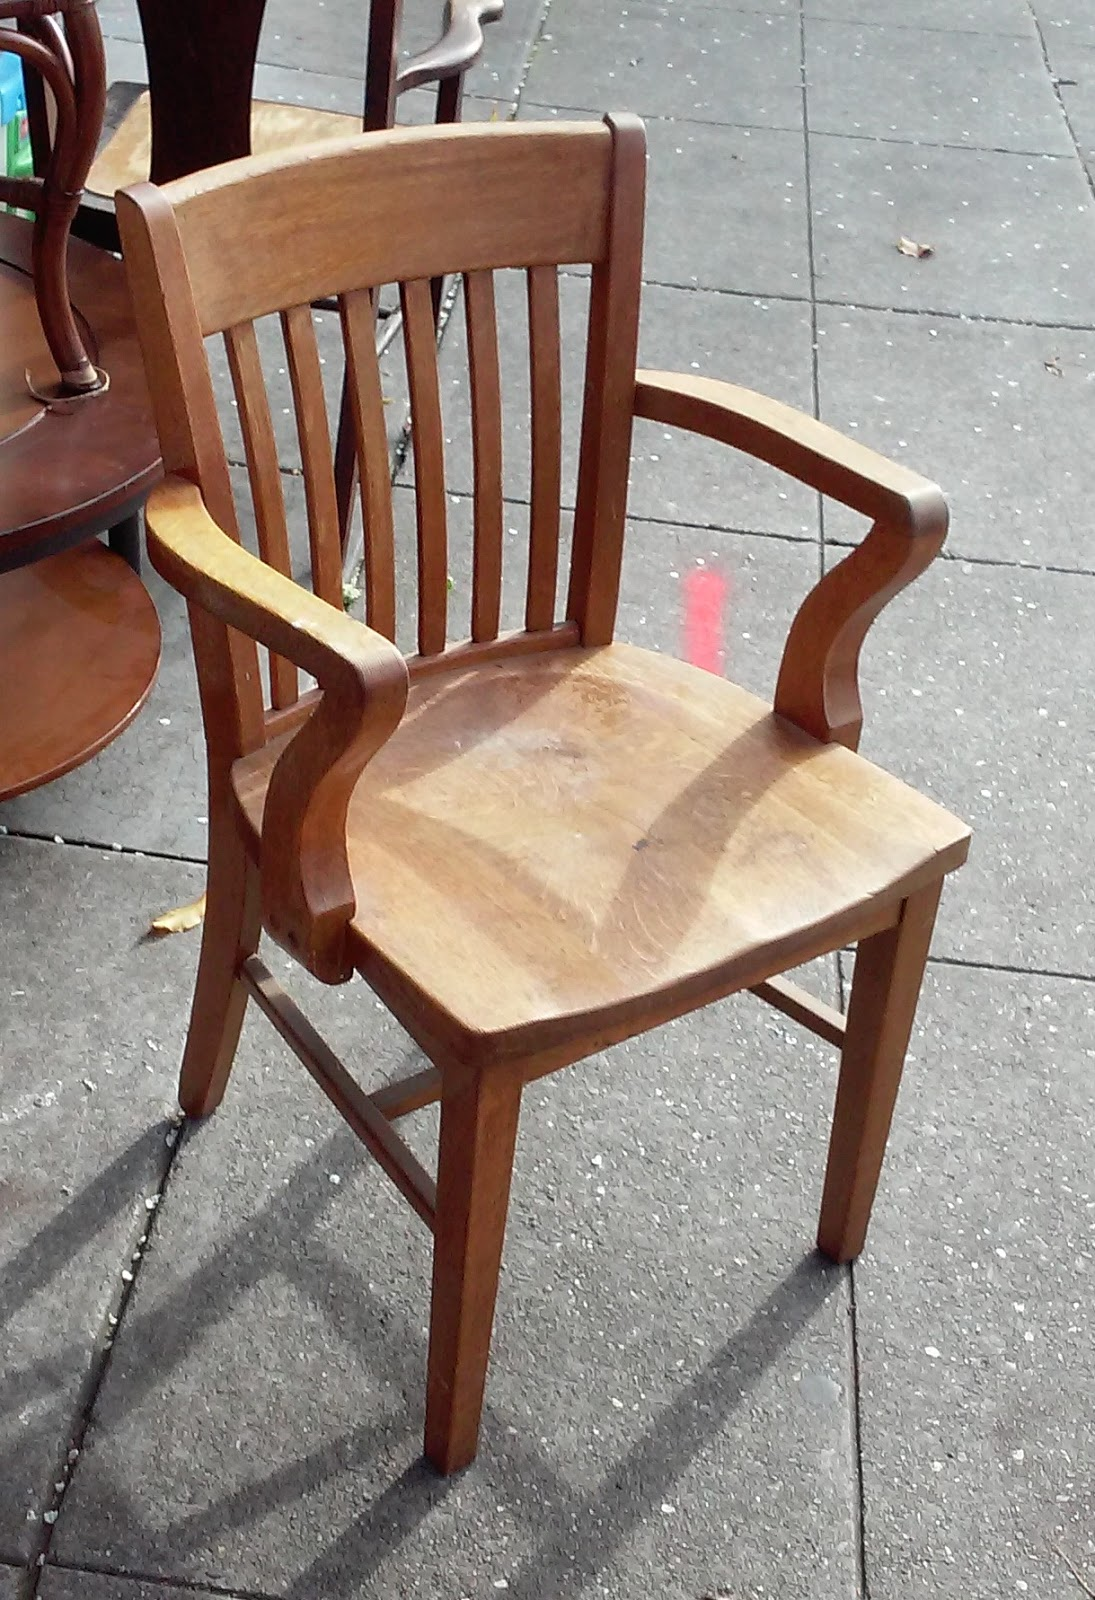 Wood Bankers Chair Uhuru Furniture And Collectibles Sold Mission Oak Wood